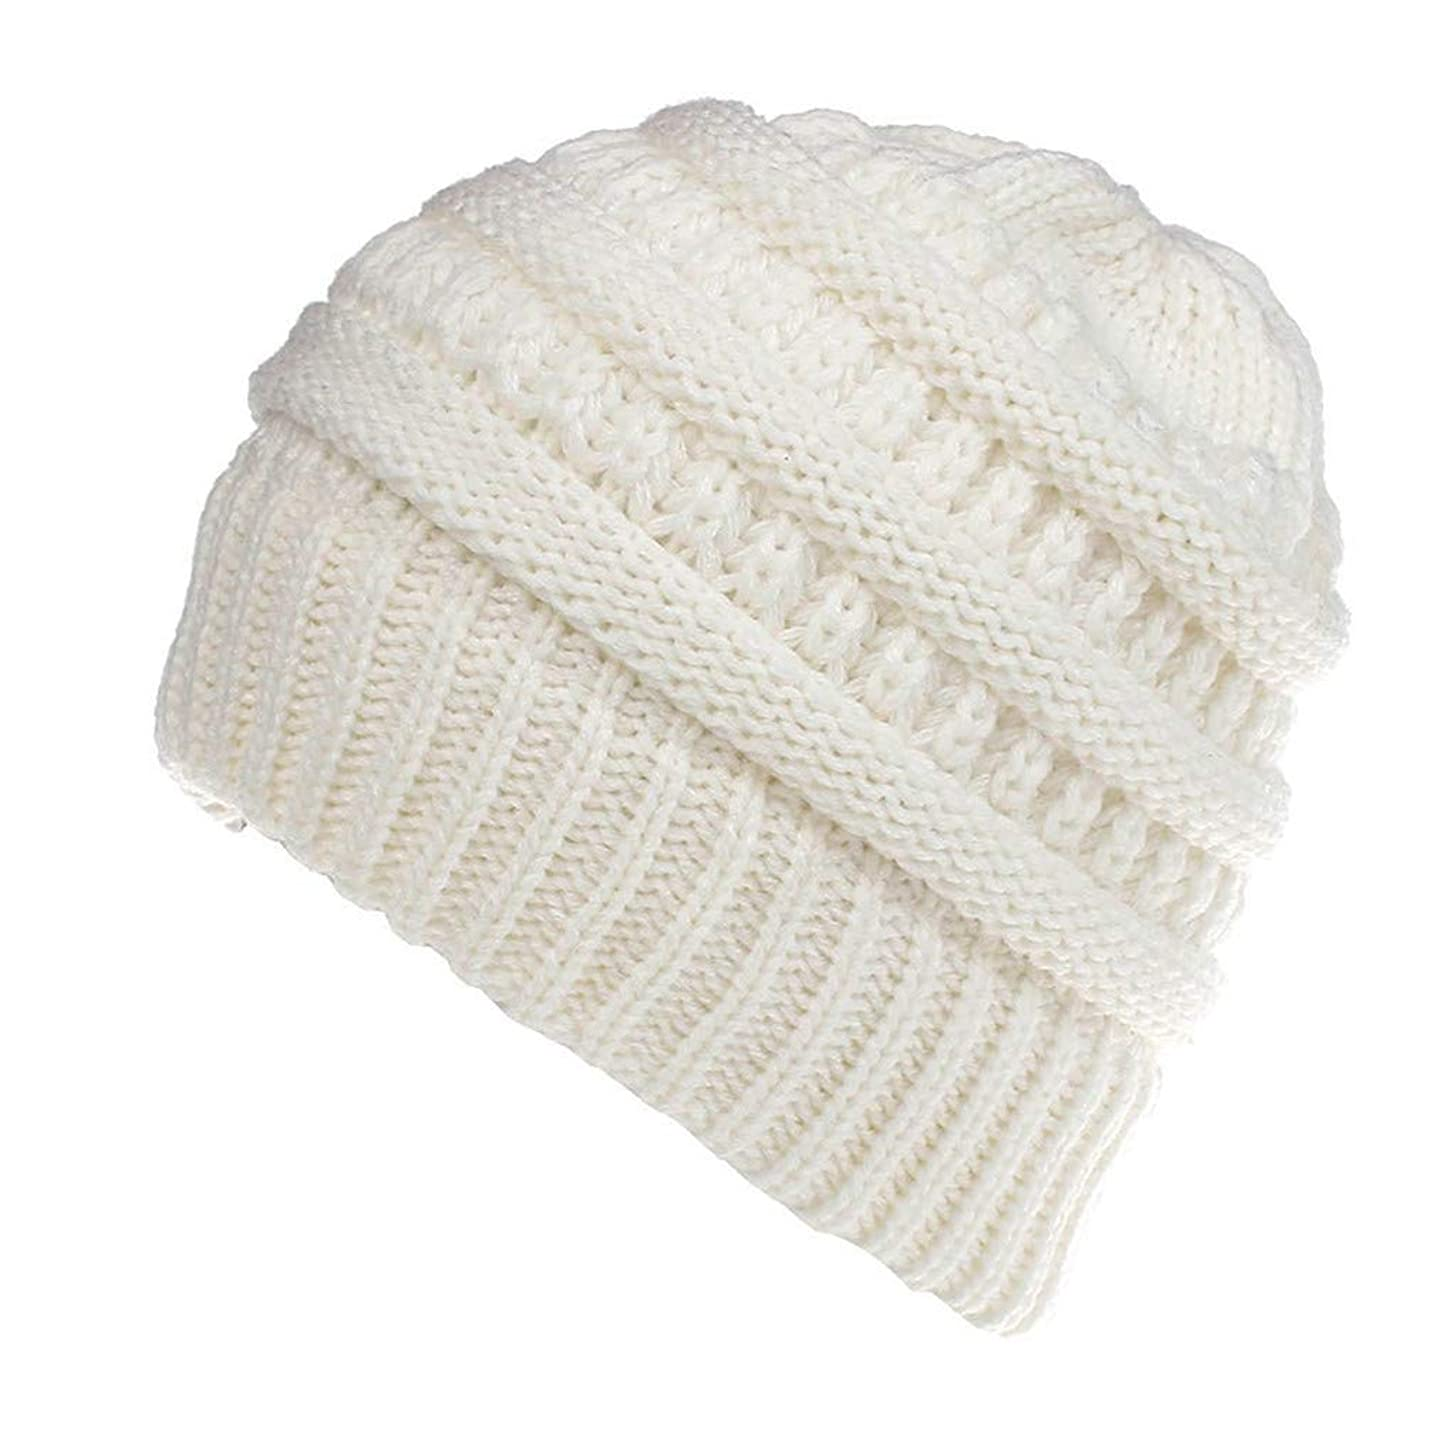 KA DUNSI Men Women Baggy Warm Crochet Winter Ski Beanie Knitted Hat